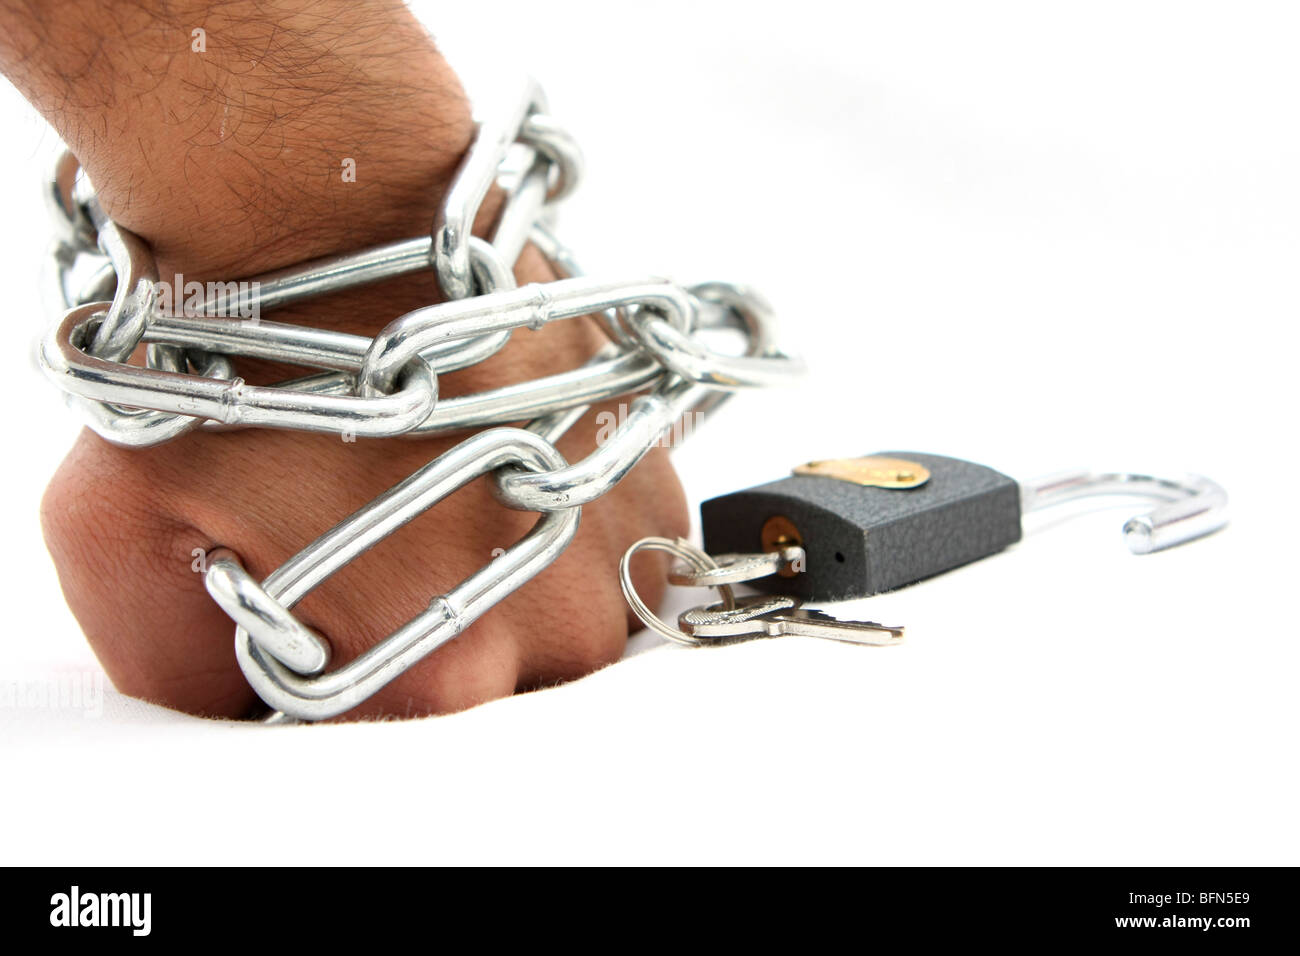 Cutout of a Man's hand chained and locked on white background - Stock Image